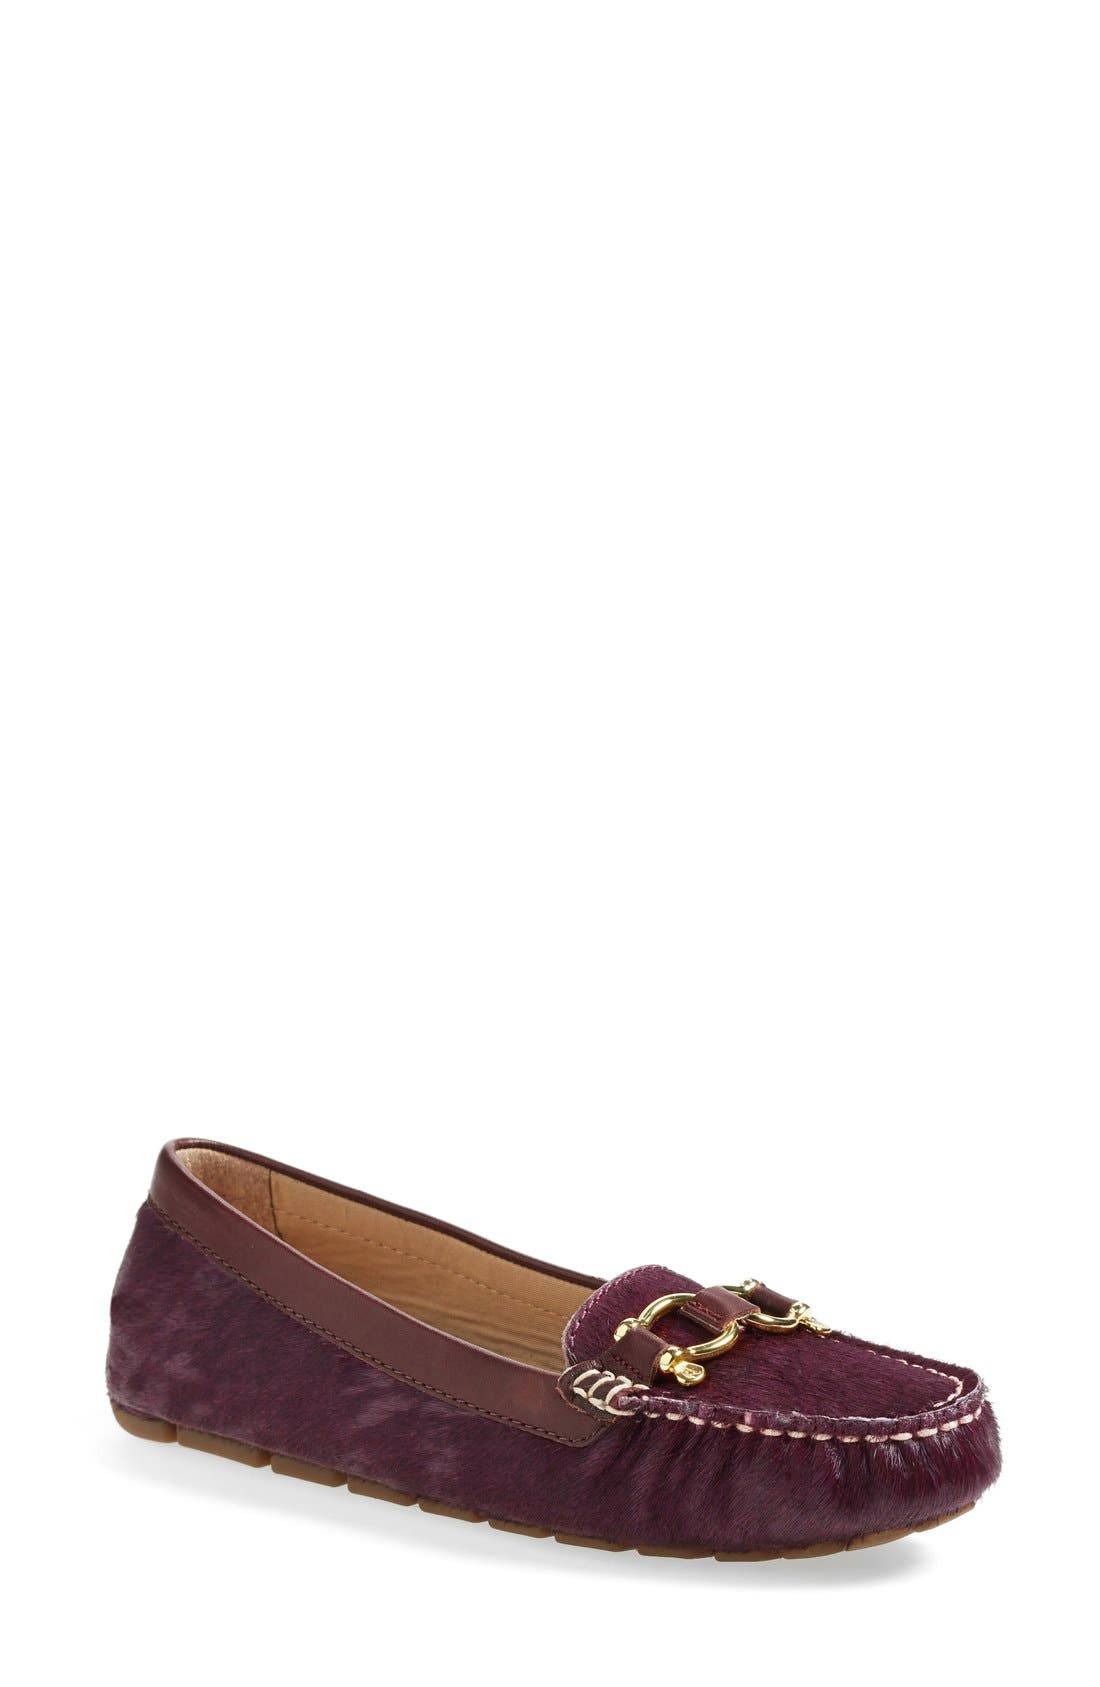 Main Image - Sperry Top-Sider® 'Jenna' Metallic Leather Loafer (Online Only) (Women)